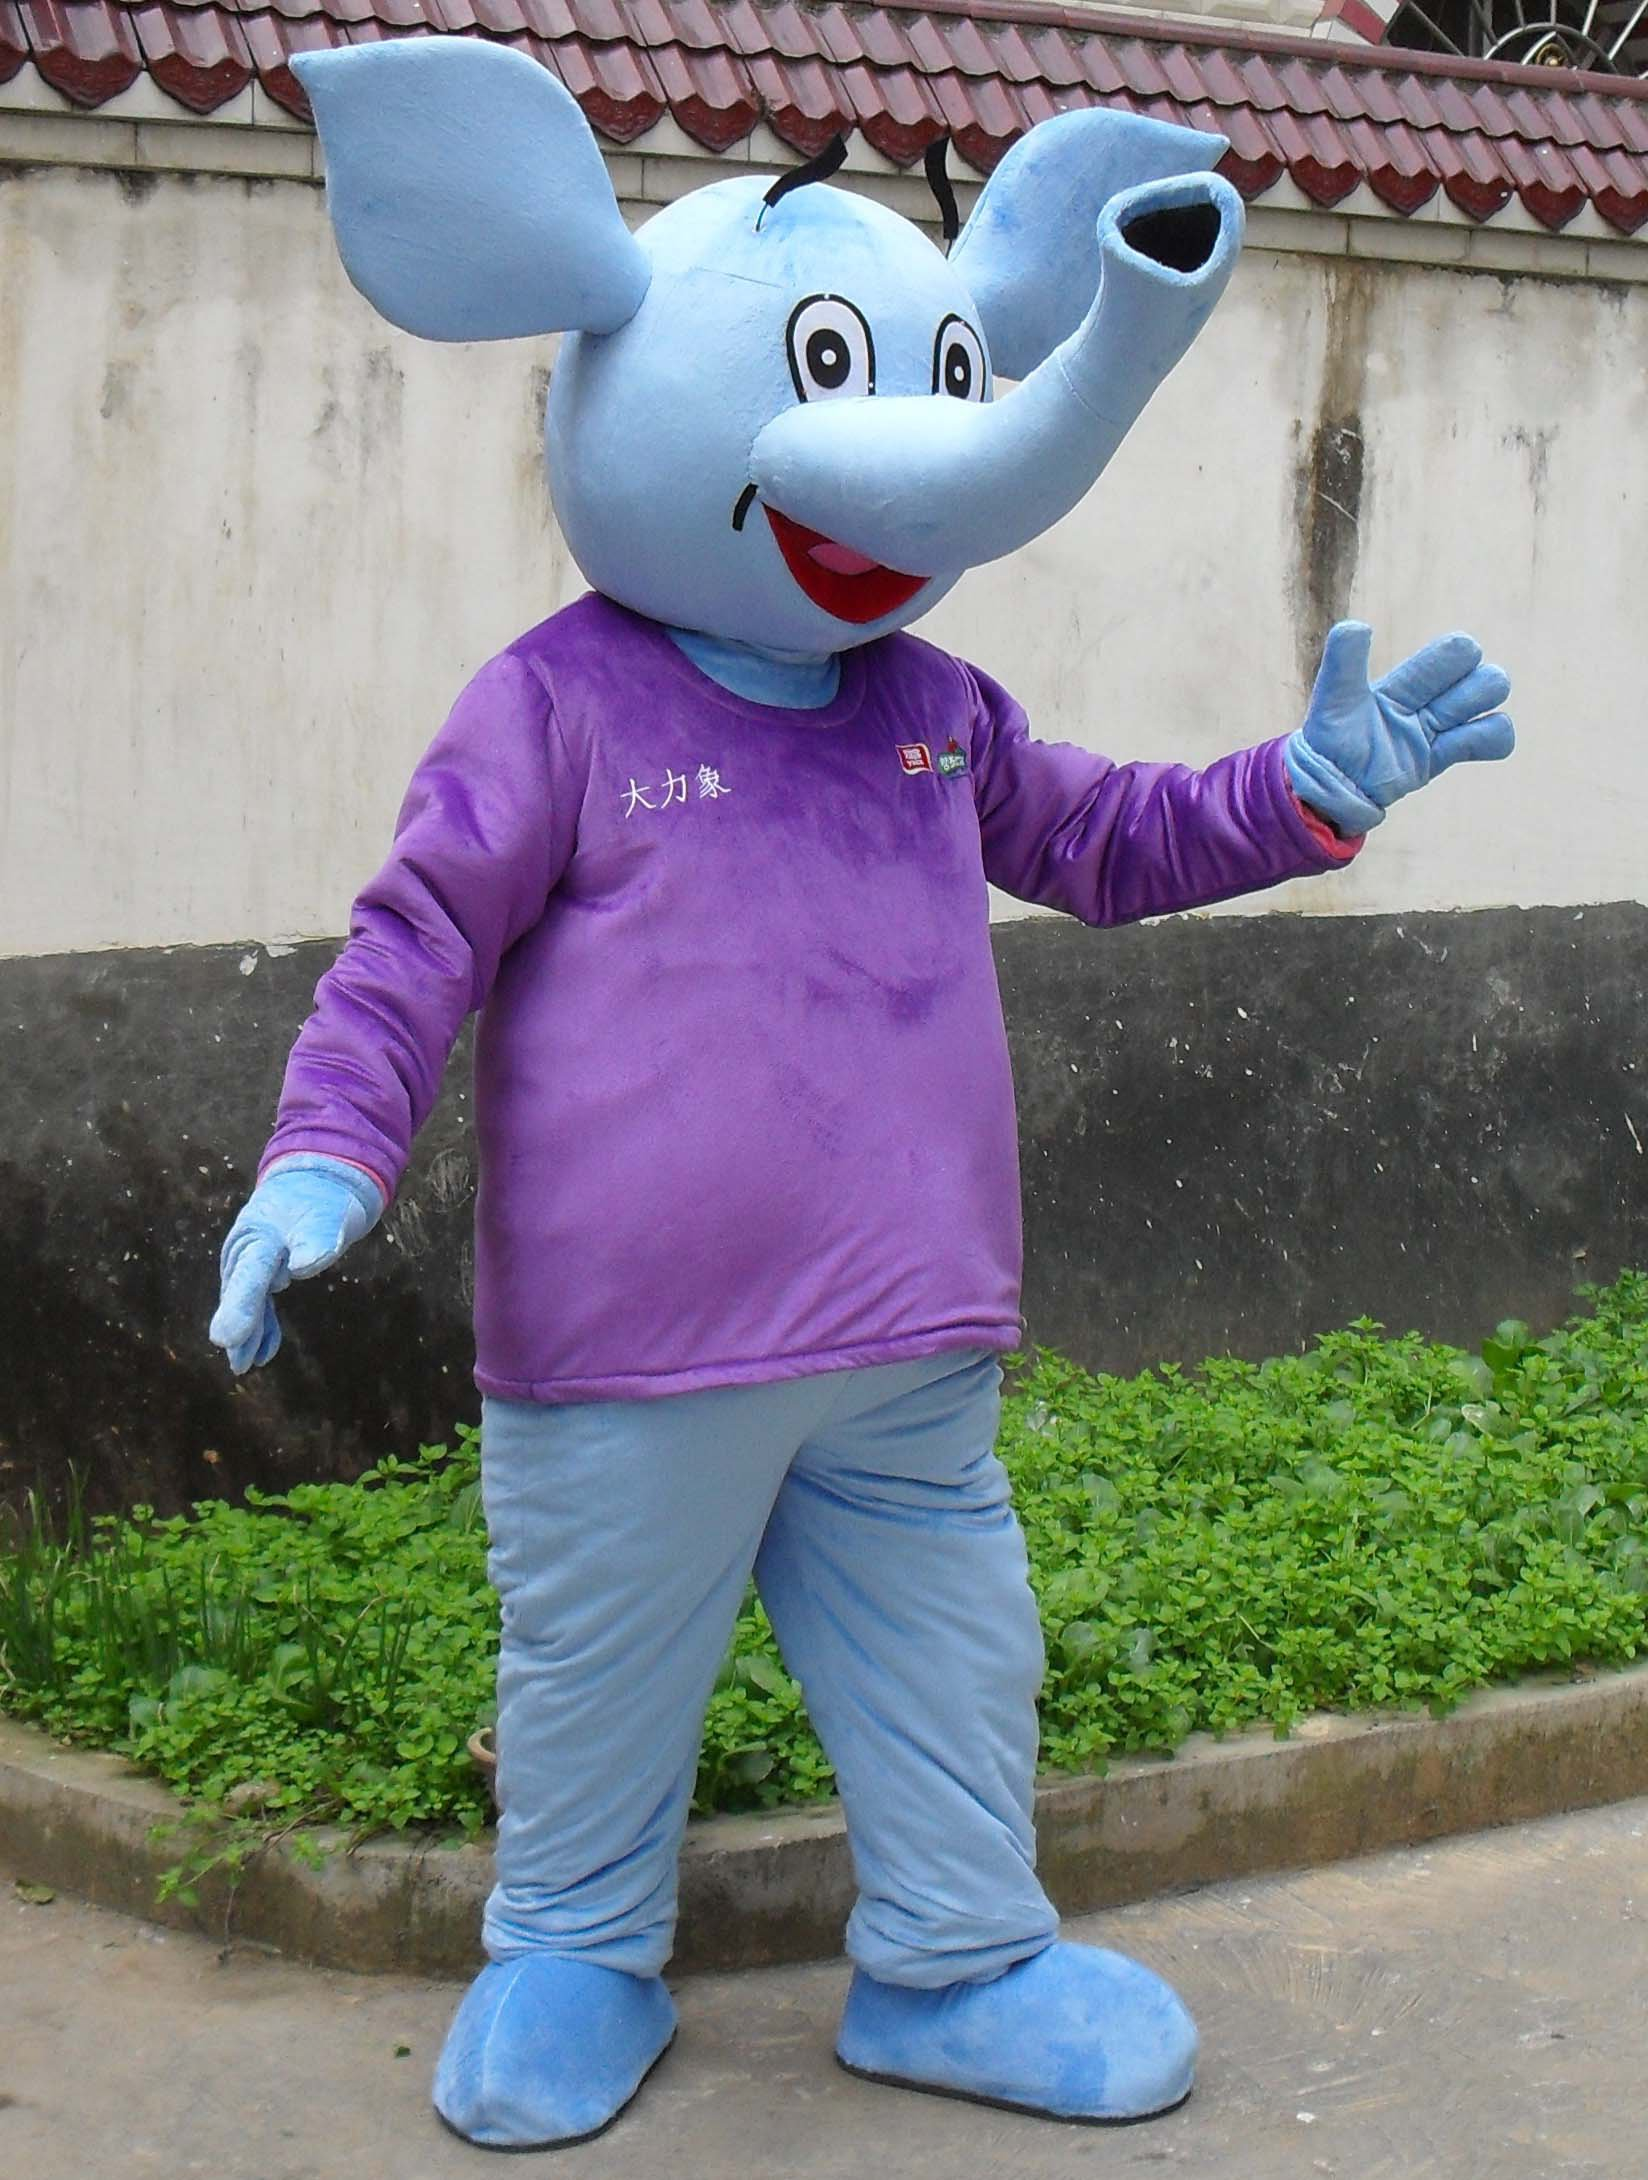 Elephant Cartoon Doll Clothing Cartoon Walking Doll Clothing Cartoon Show Clothing Enterprises Vigorously As Mascot Mascot Costume